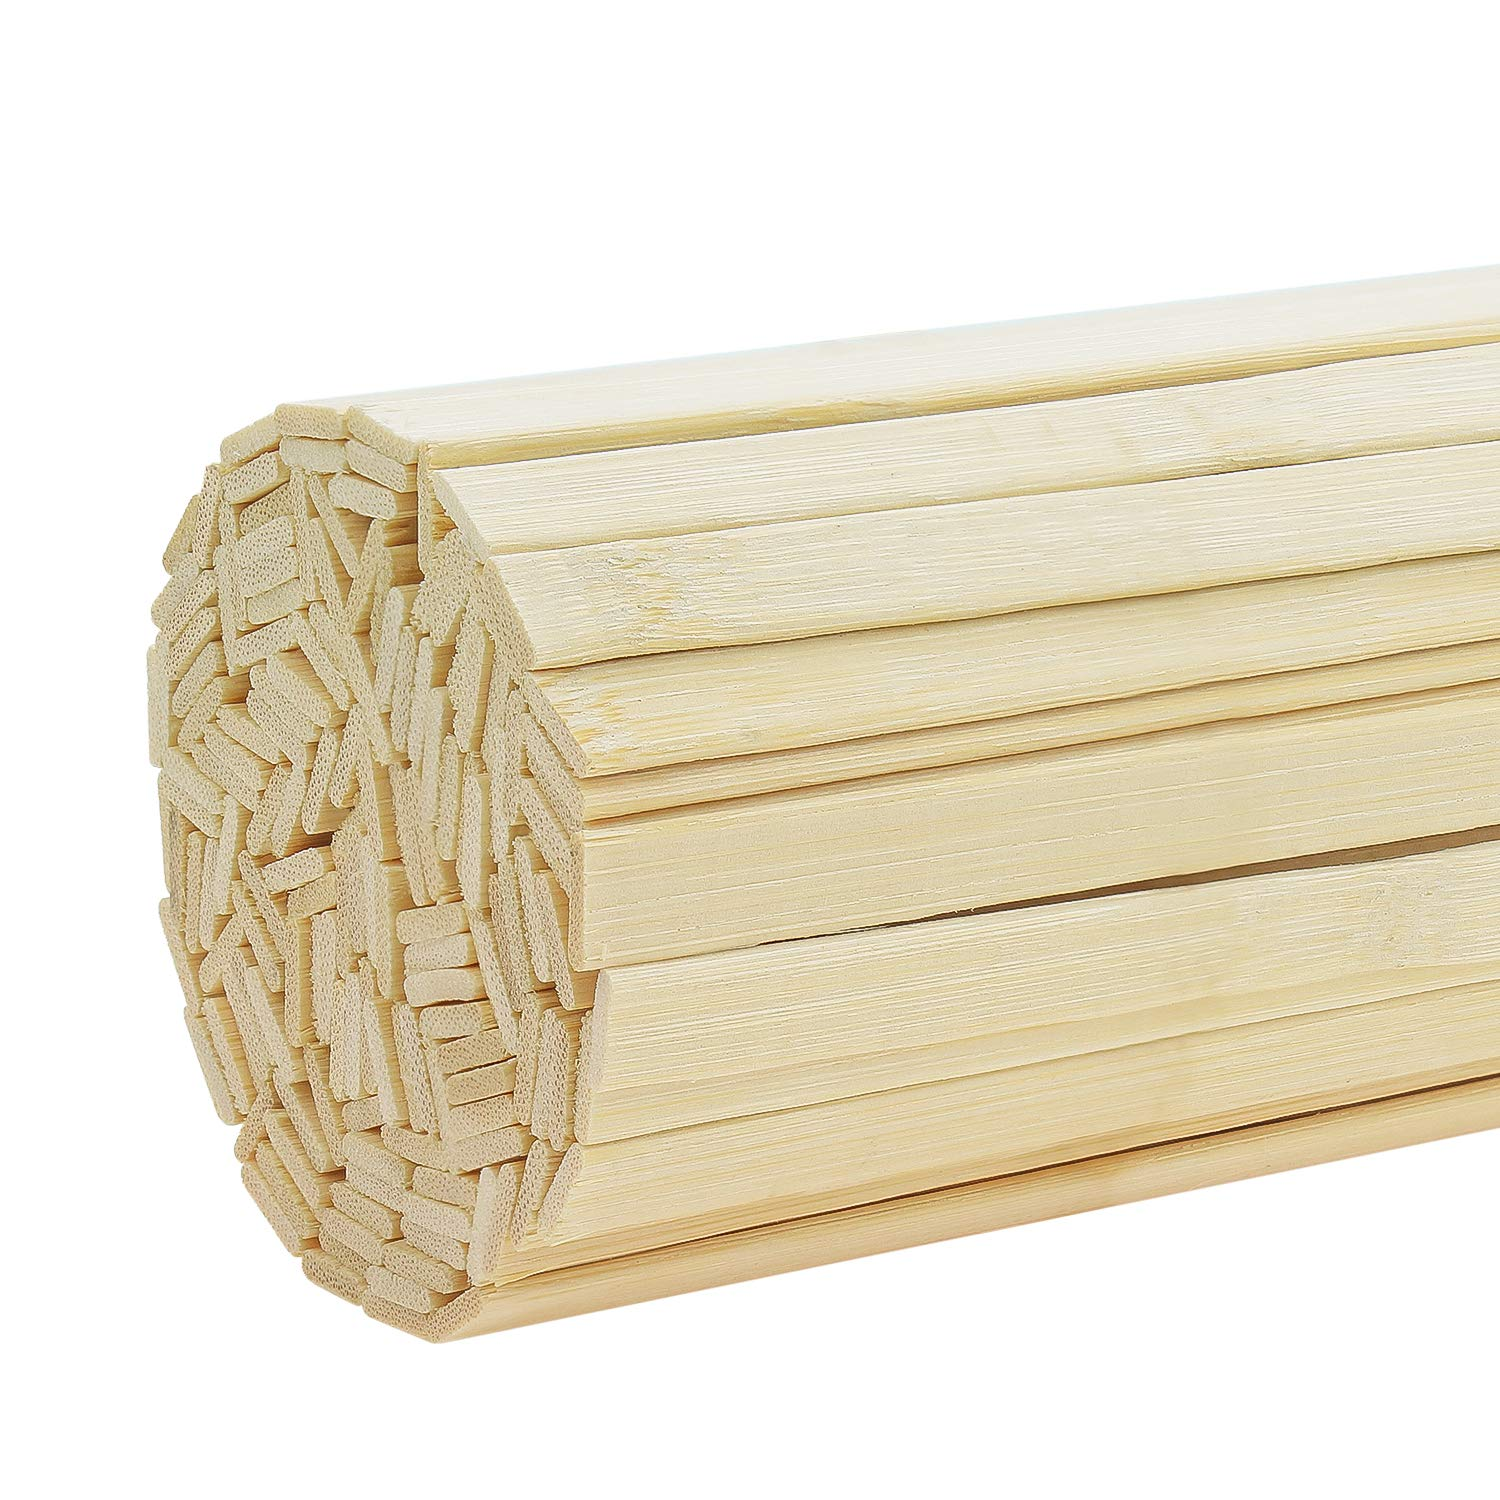 Powlankou 40 Pieces 11.81 Inches Natural Bamboo Sticks, Bamboo Strips, Strong Natural Bamboo Sticks for Craft Projects